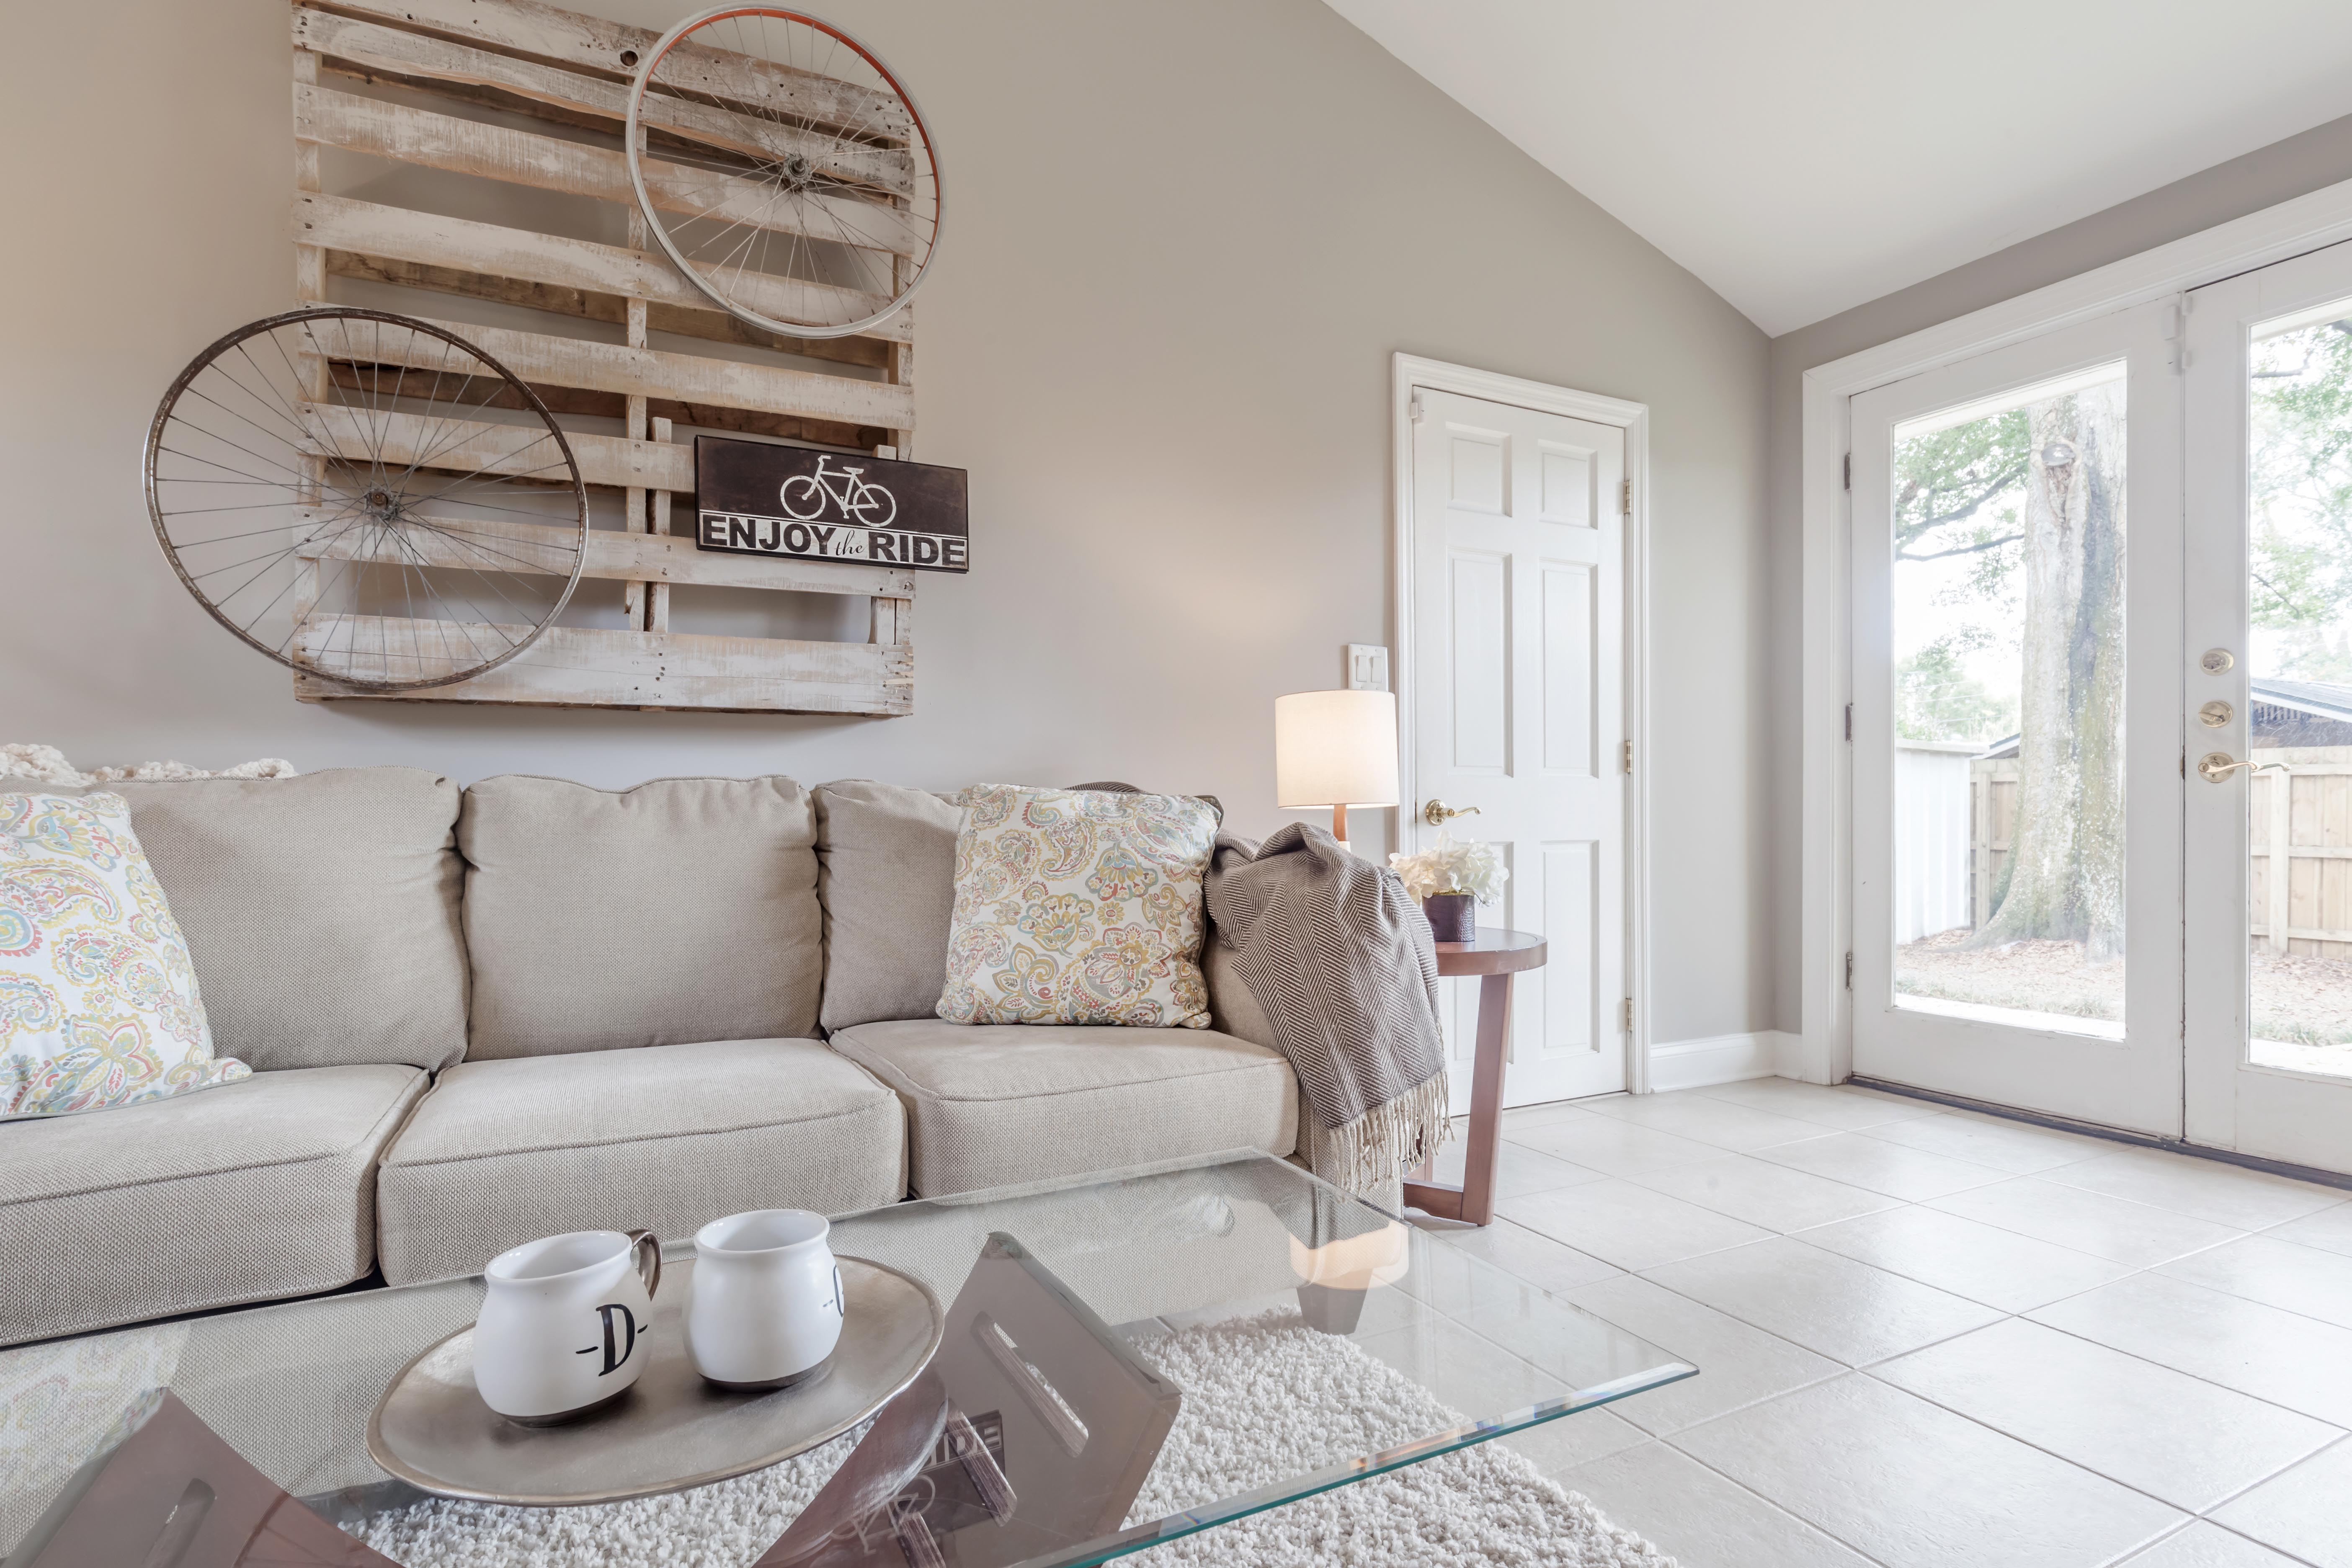 Chic, Eclectic Home Ready for Buyer - Cardinal Designs